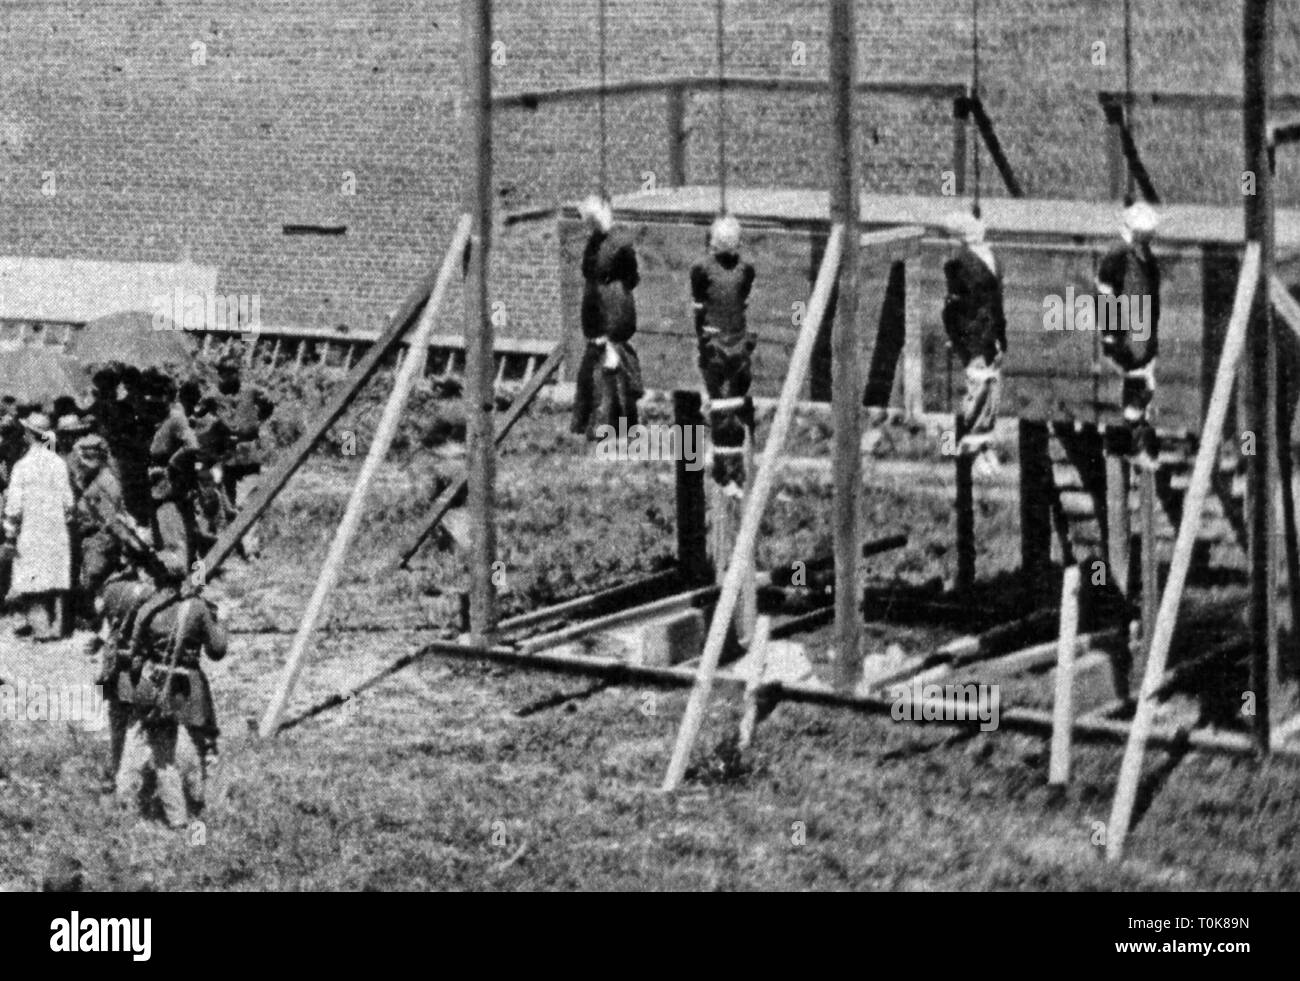 justice, penitentiary system, hanging, execution of the conspirators of the assassination of Abraham Lincoln, Fort Lesley McNair, Washington D.C., 7.7.1865, Additional-Rights-Clearance-Info-Not-Available - Stock Image